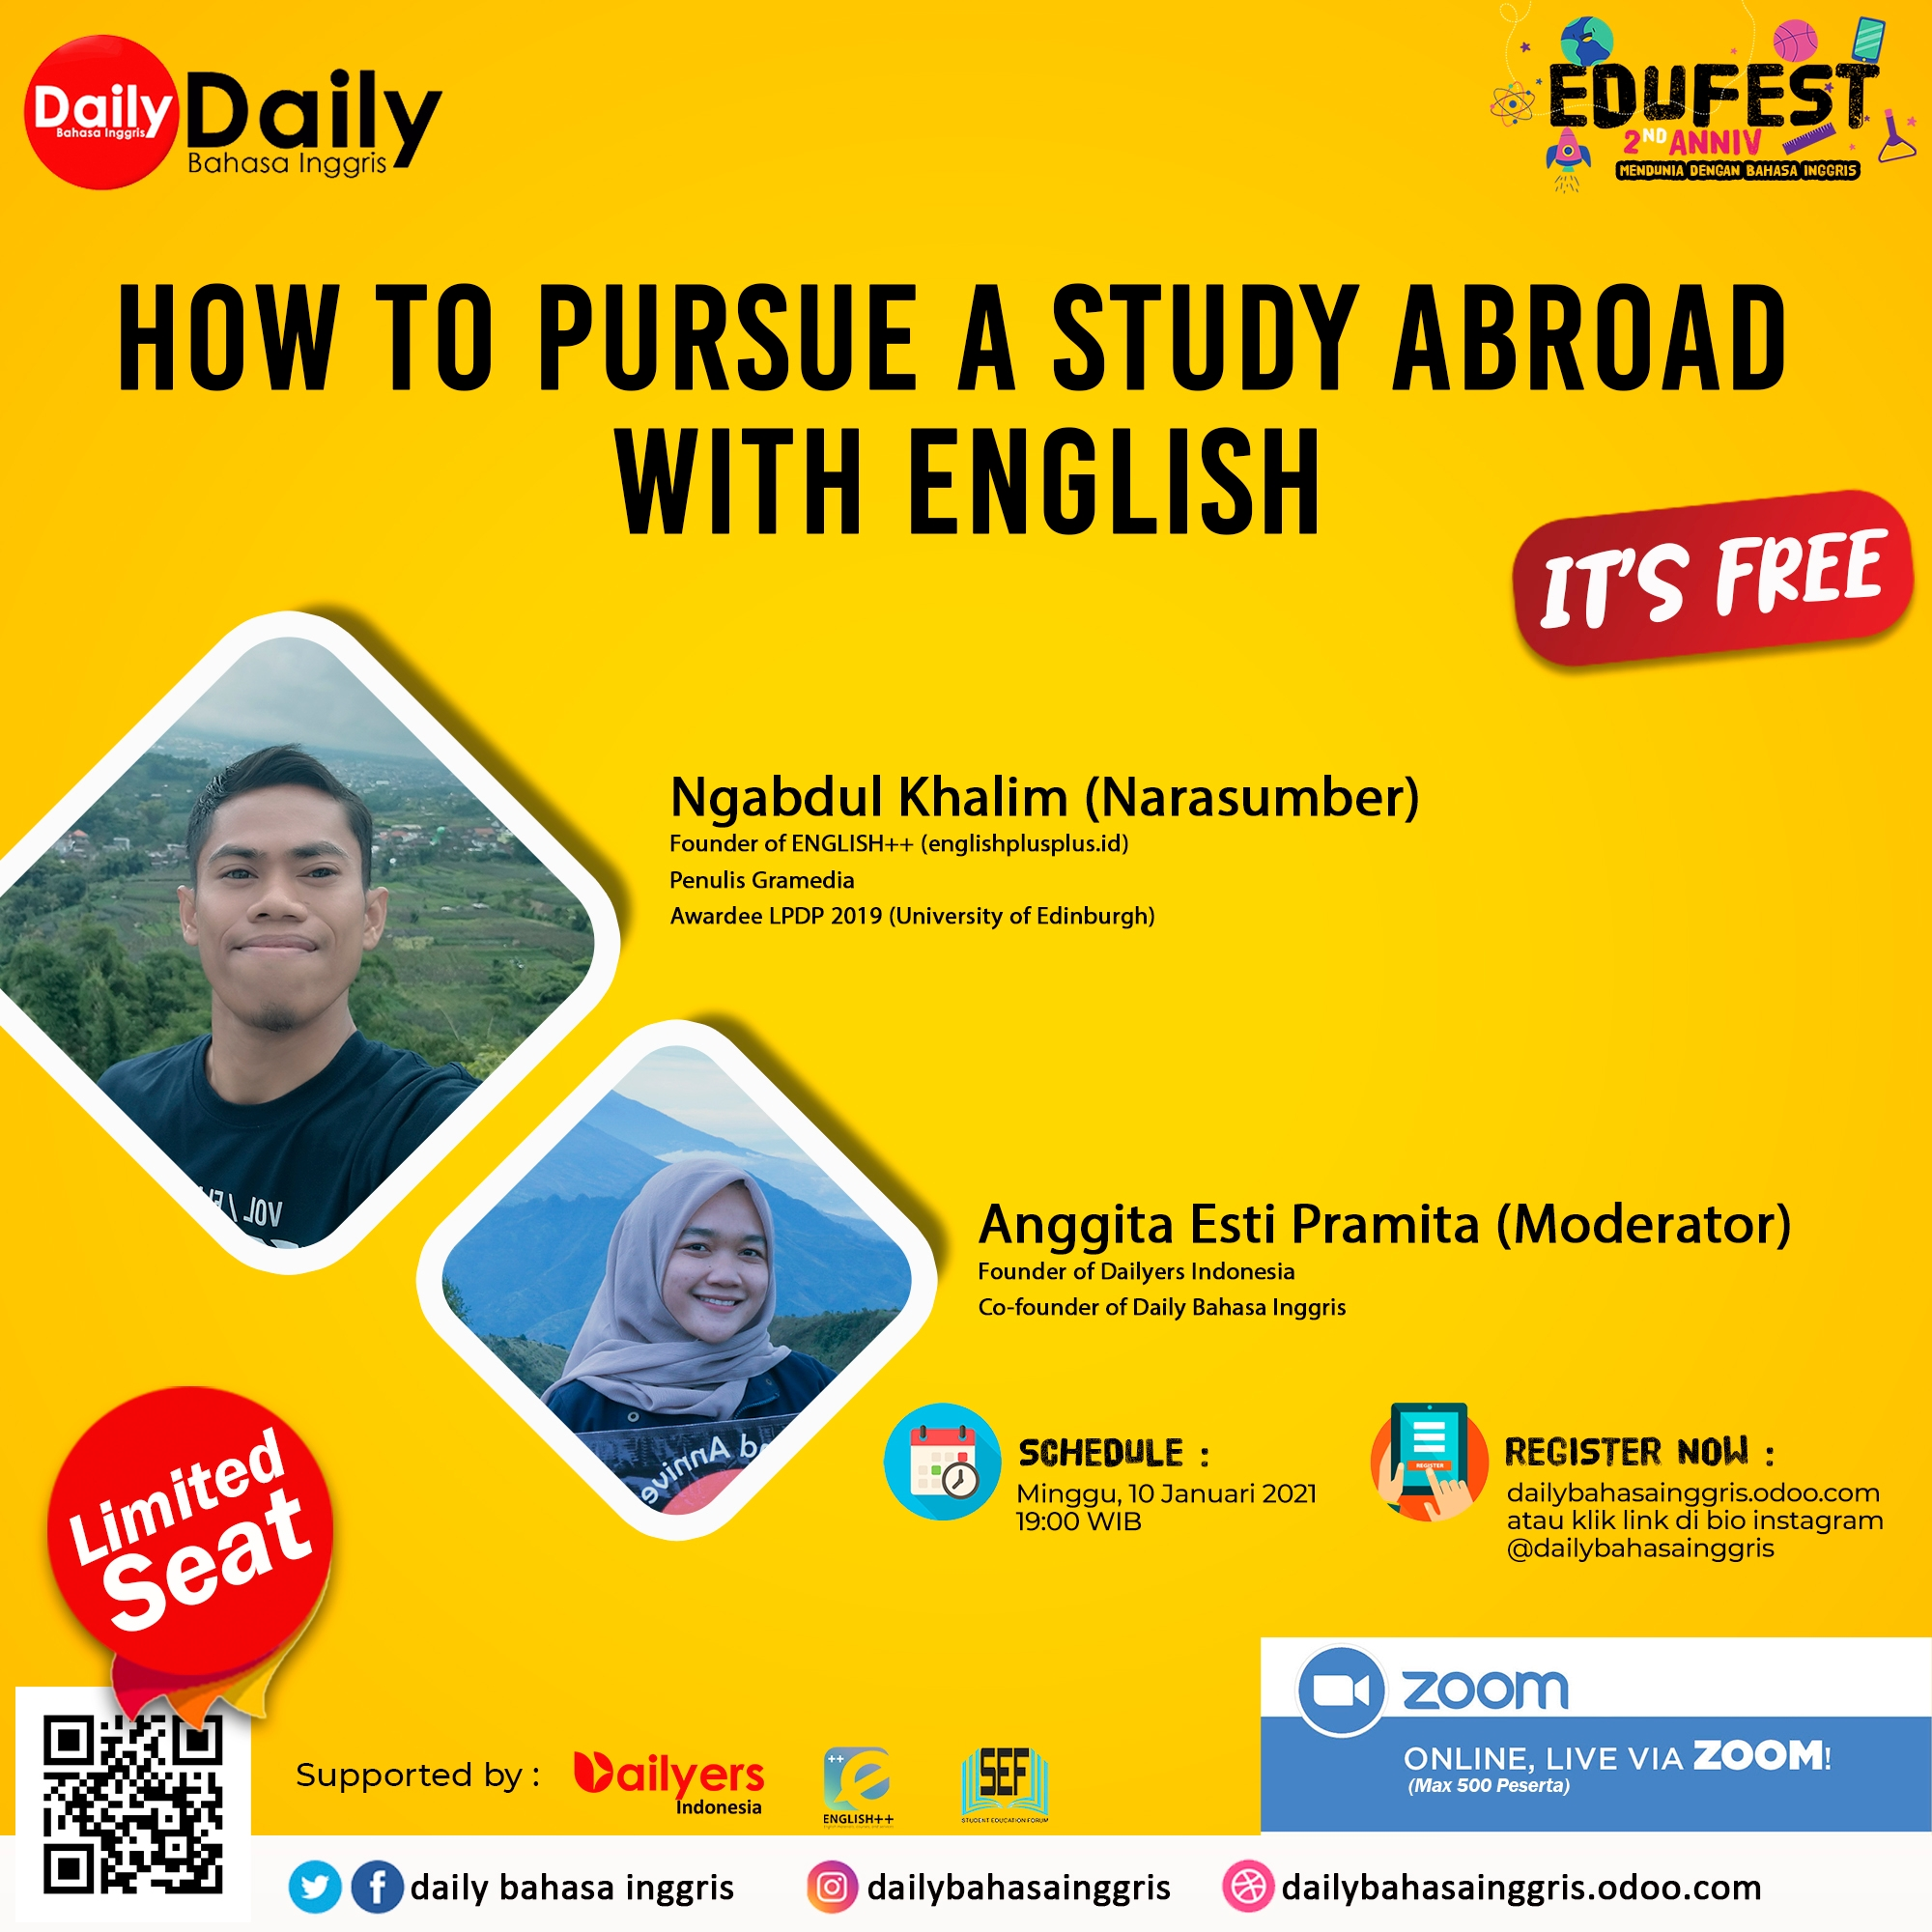 How to Pursue a Study Abroad with English